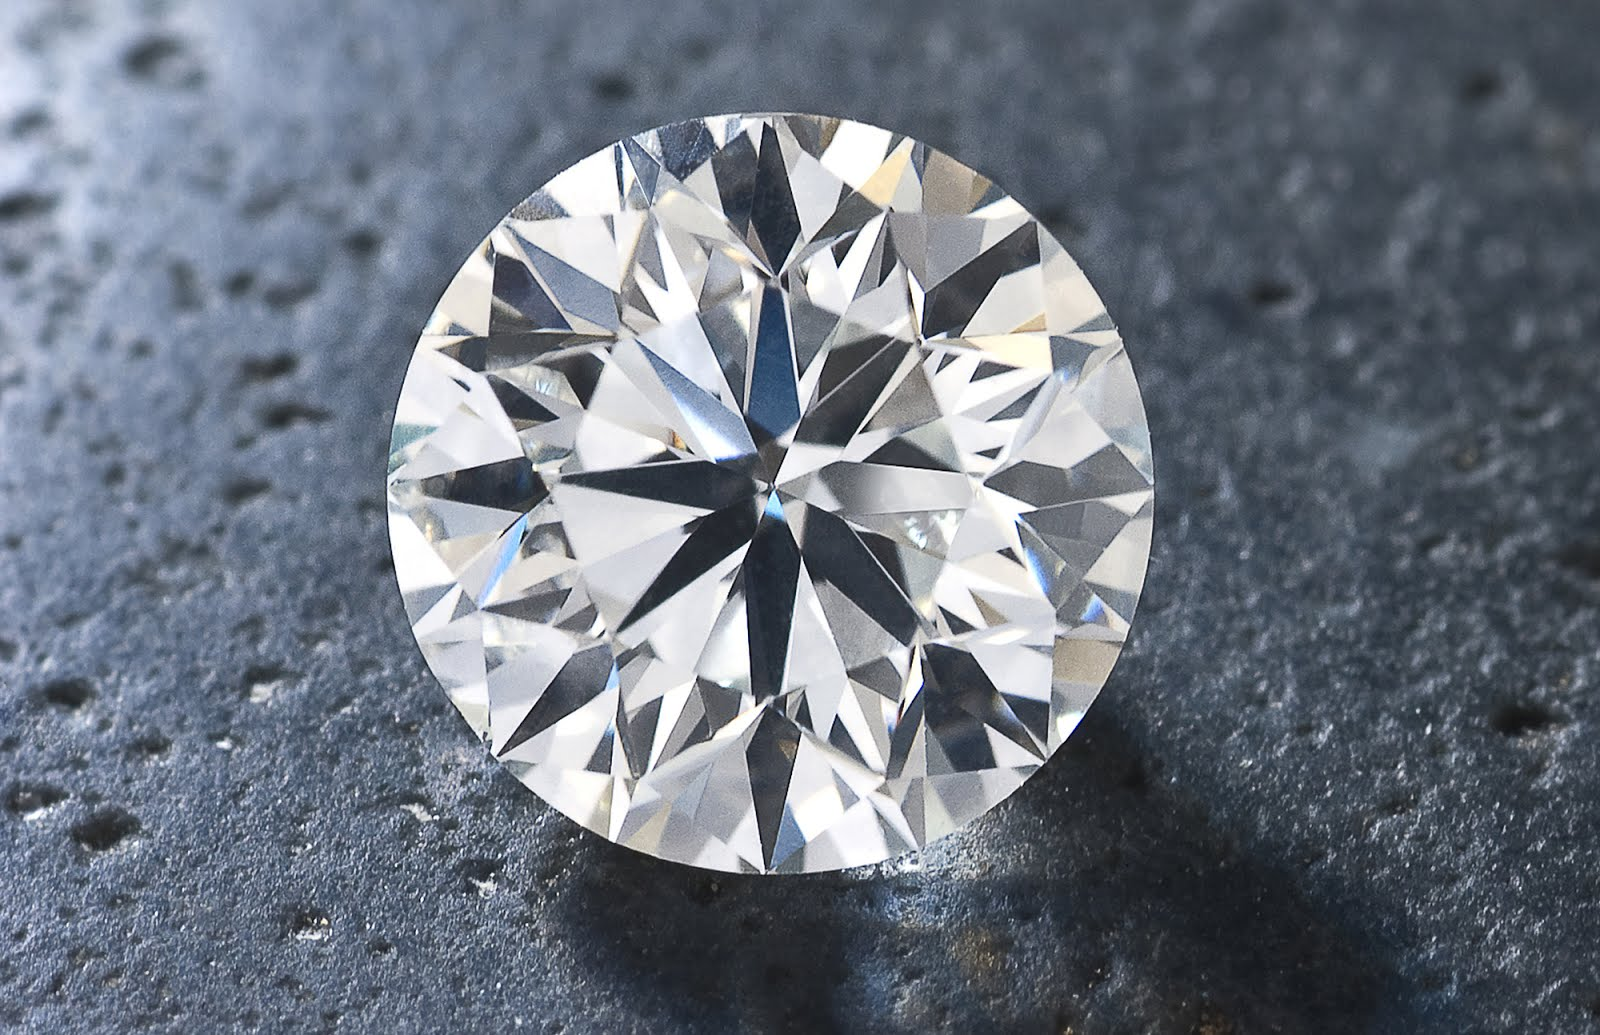 are criteria of man manufacturer be stones great synthetic product an diamonds will set their specific in we looking jewelry enormous buyers can for however grows diamond a carat who made not